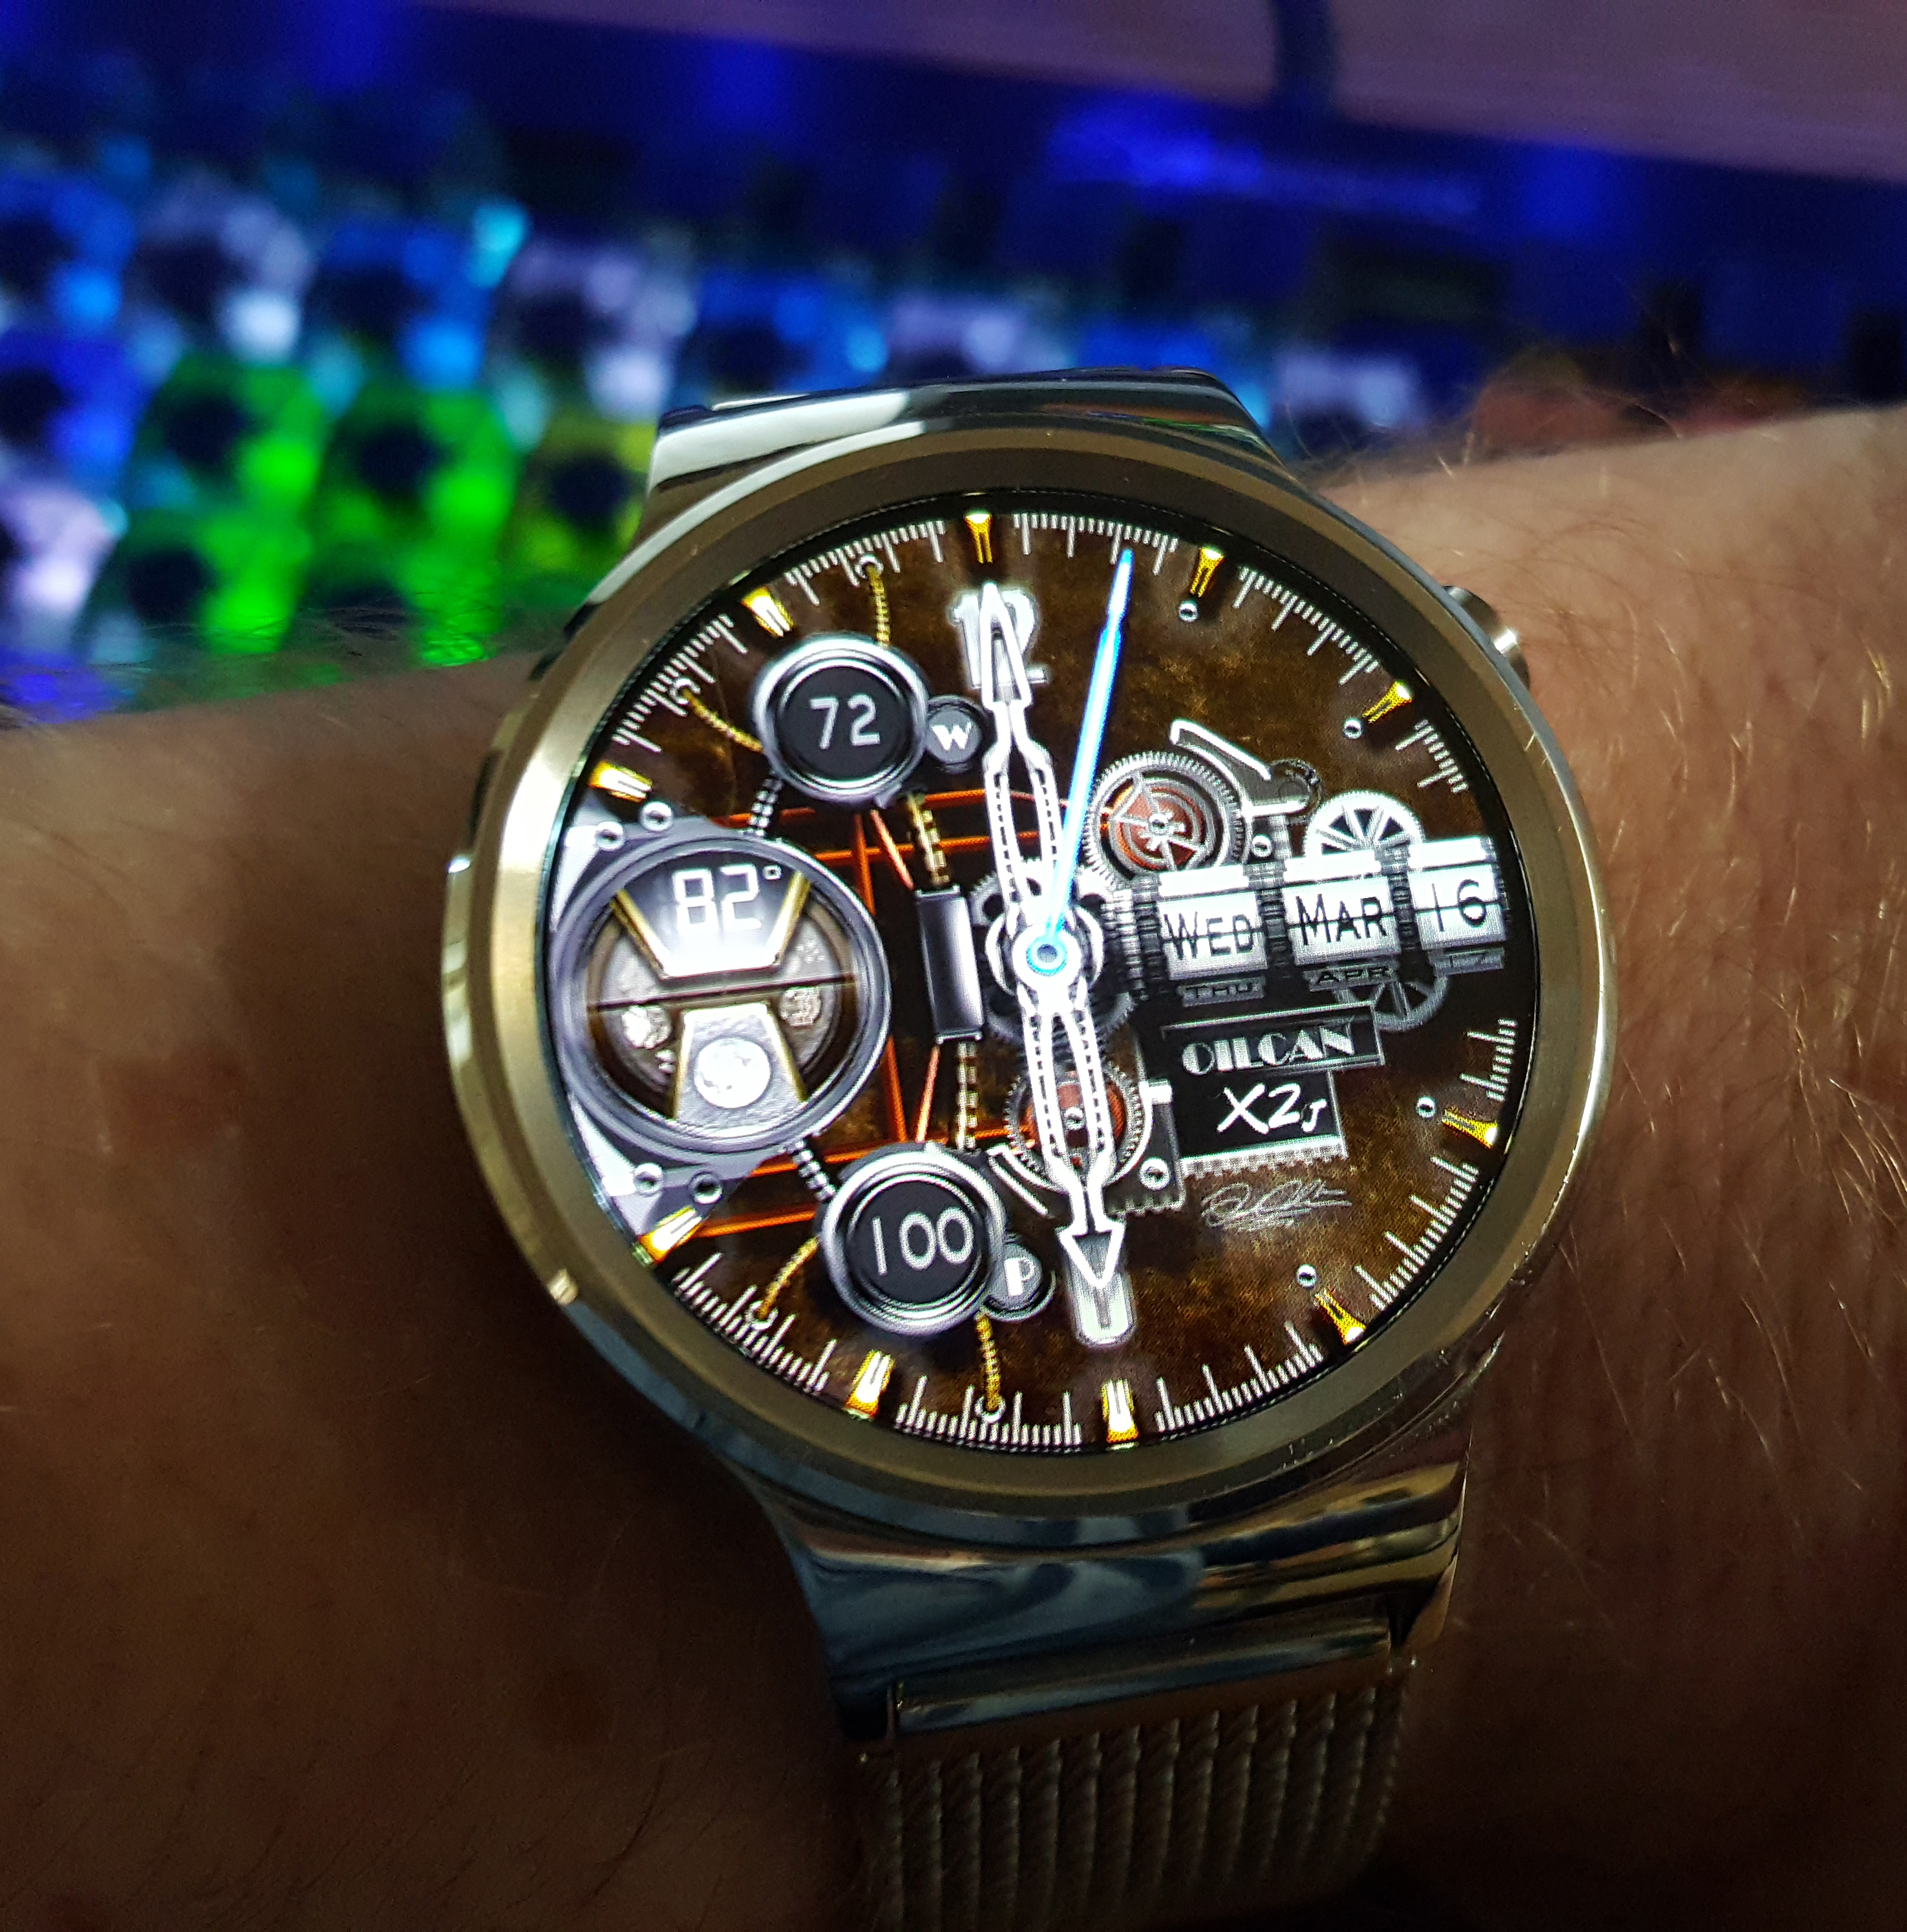 Designer android wear watchface -  Steampunk Watch Face For Android Wear Oilcanx2j By Oilcan1000